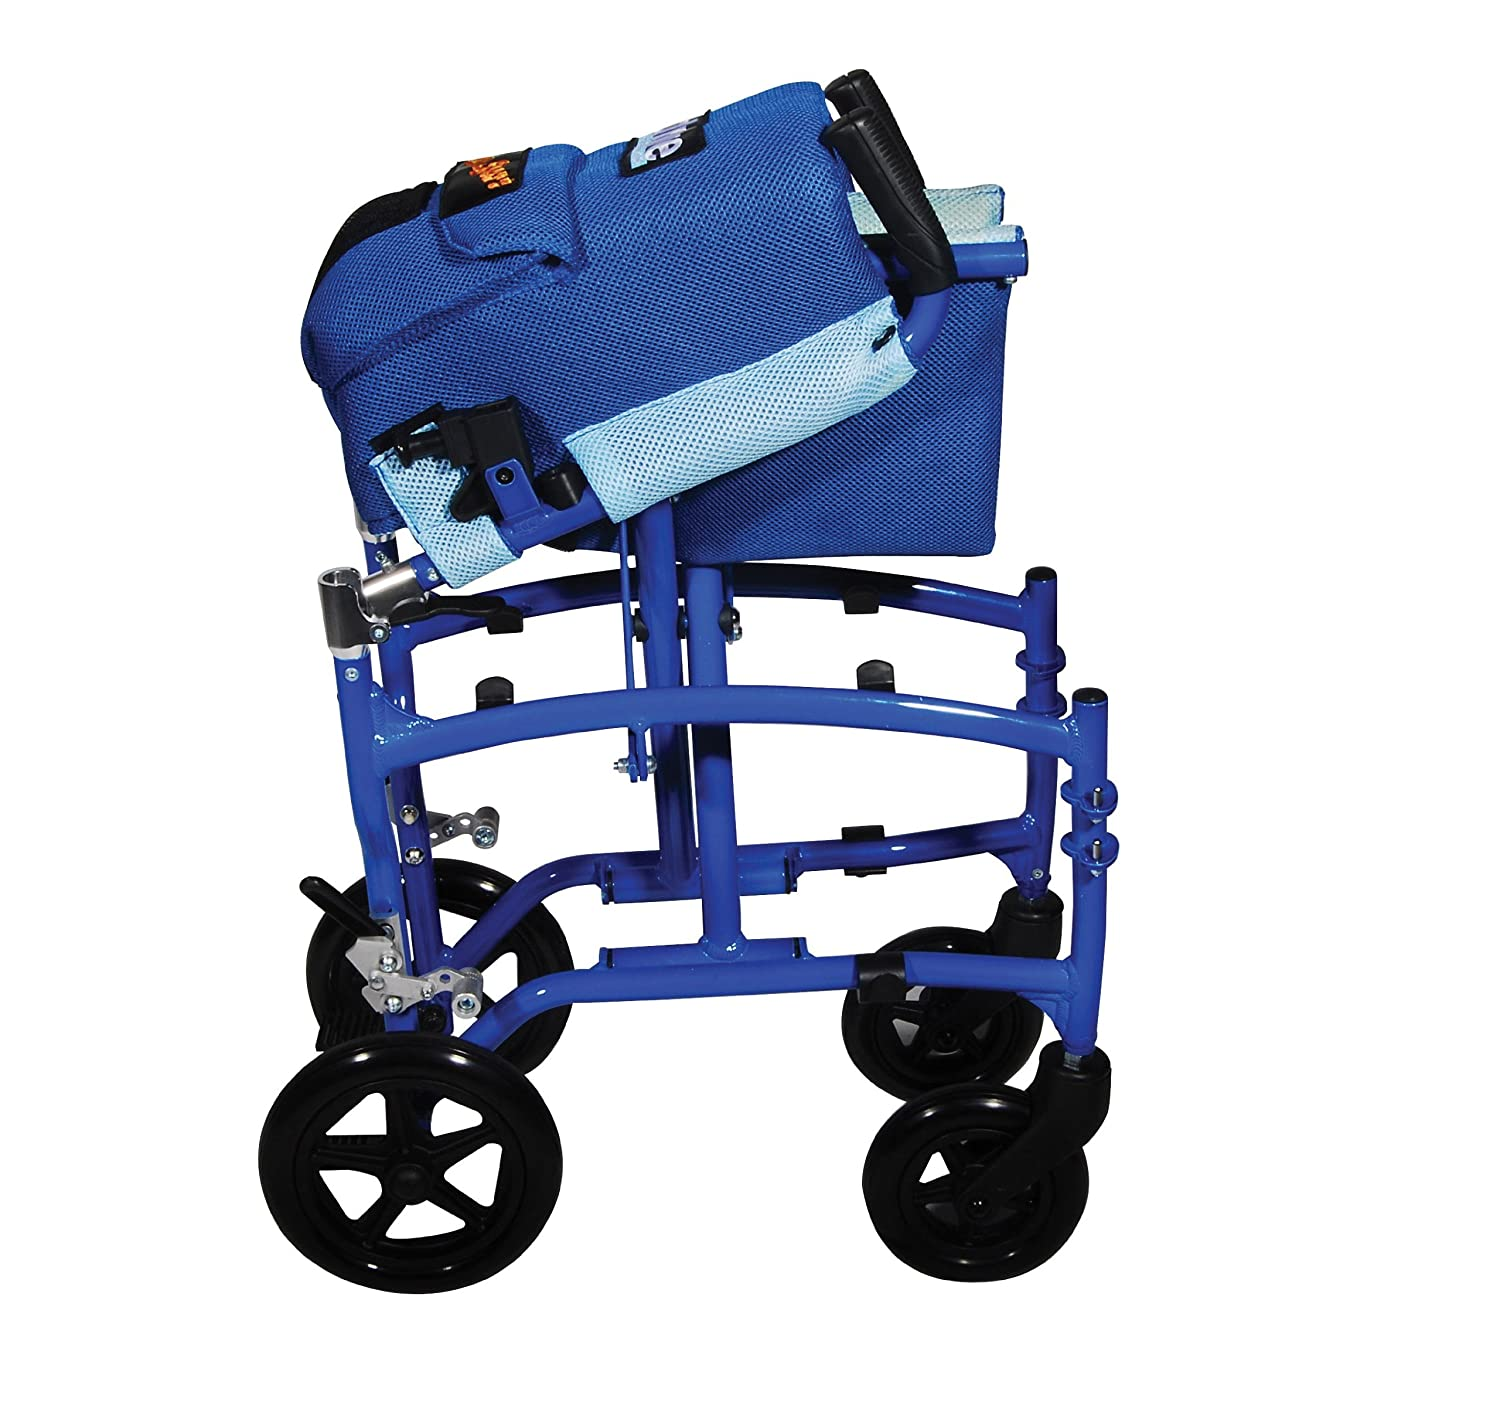 Amazon Drive Medical Transport Chair Blue Health & Personal